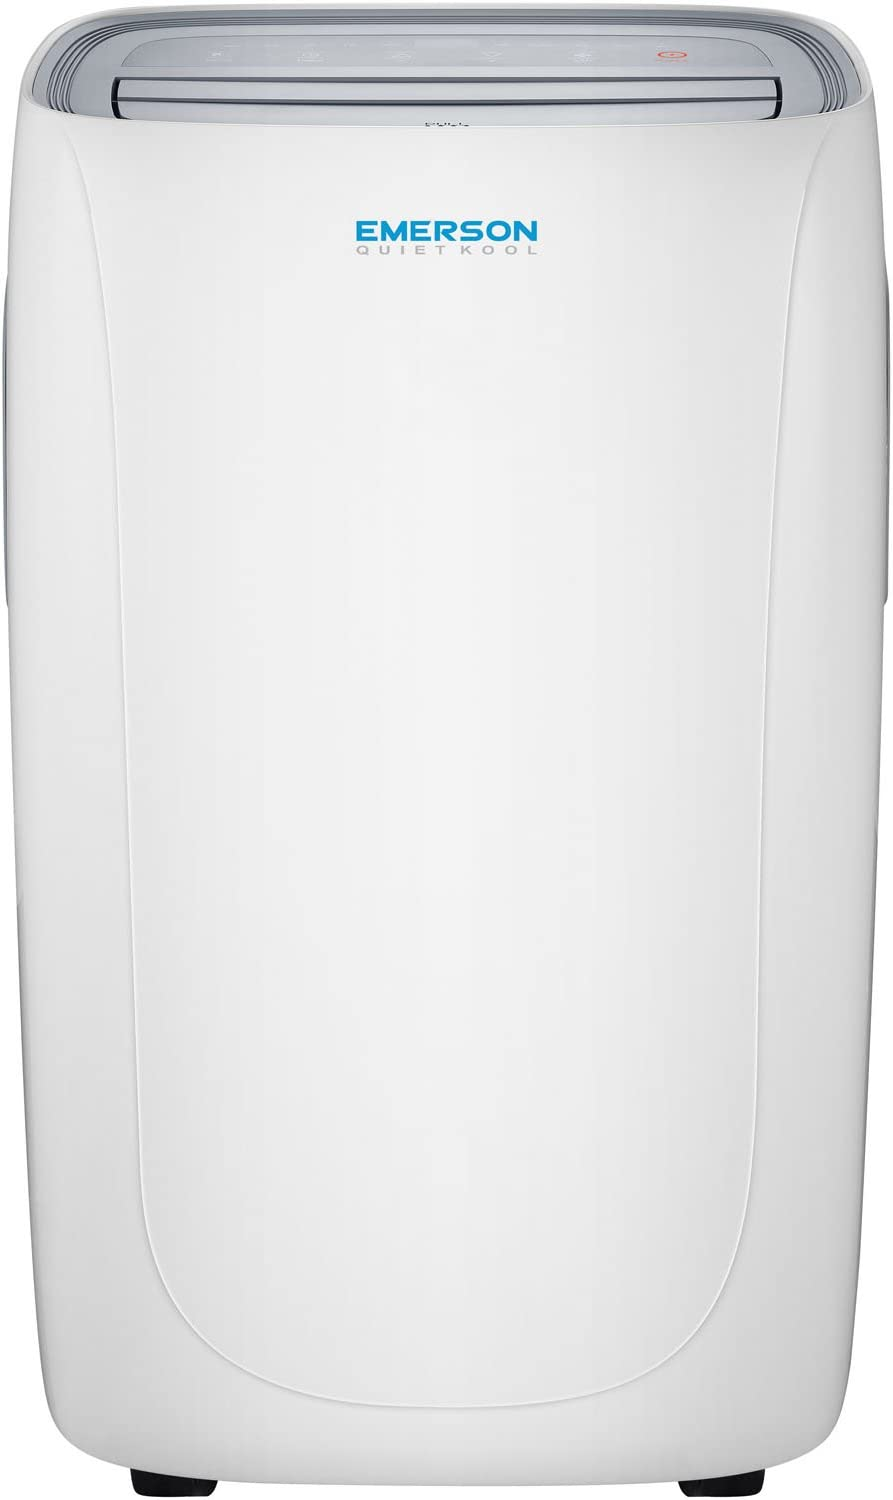 Emerson Quiet Kool Portable Air conditioner - EAPC10RD1, Estimated cooling area – 200-sq.ft